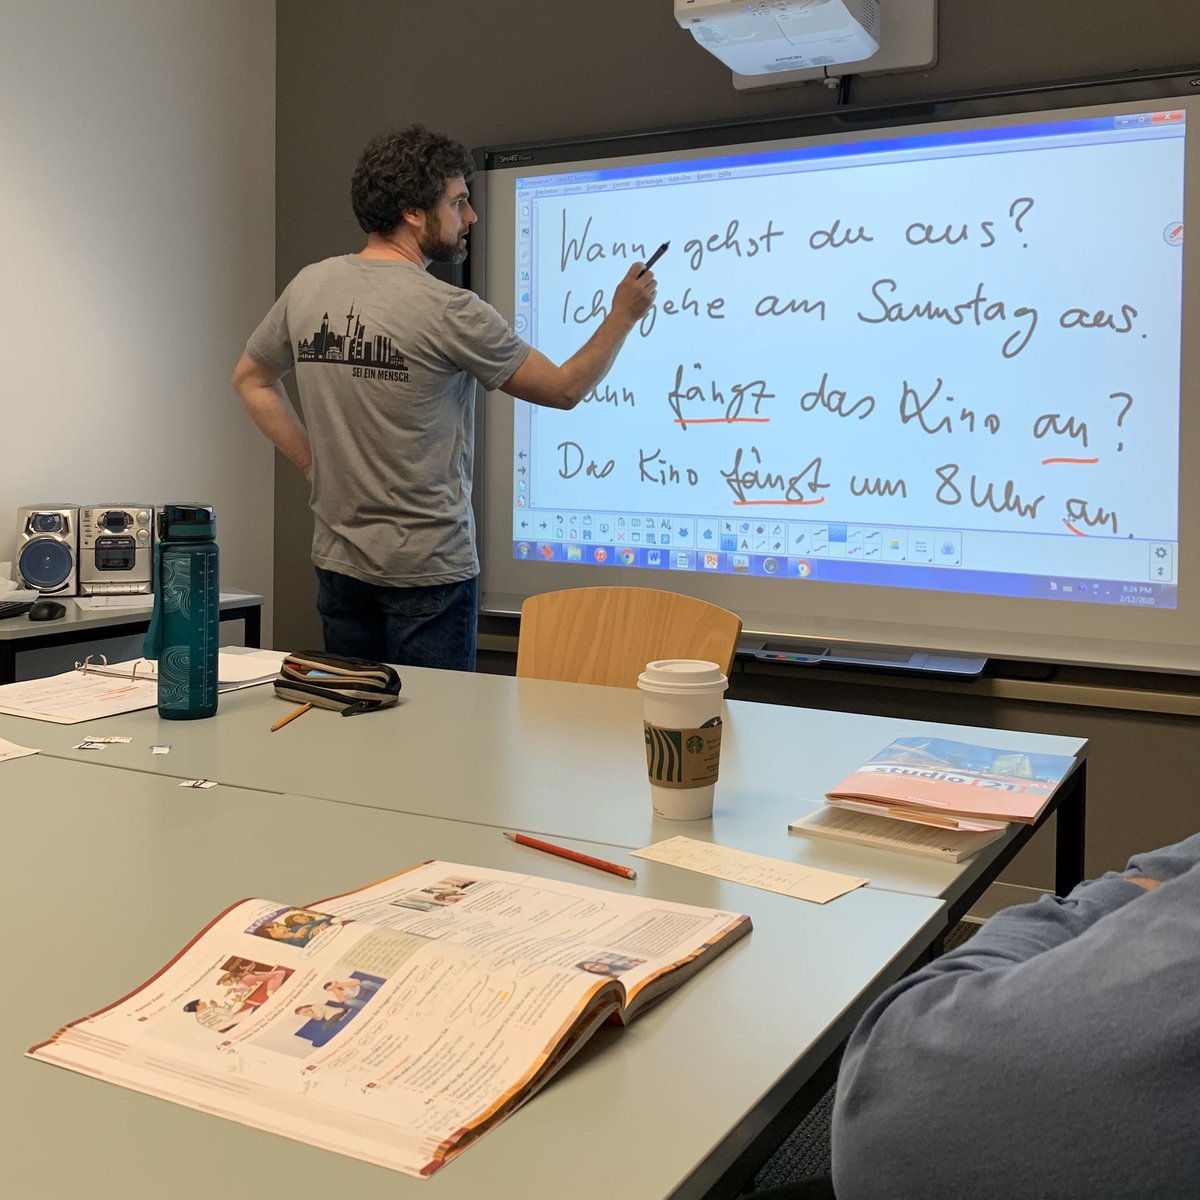 Register NOW for our 2020 Spring Quarter German language courses. We offer 5 and 10-week courses at a variety of levels. Early Bird Special ends March 11, 2020.  Register here: https://german-institute.org/german-language-courses/german-courses/…  #learngermanpic.twitter.com/wnYxg38r0H